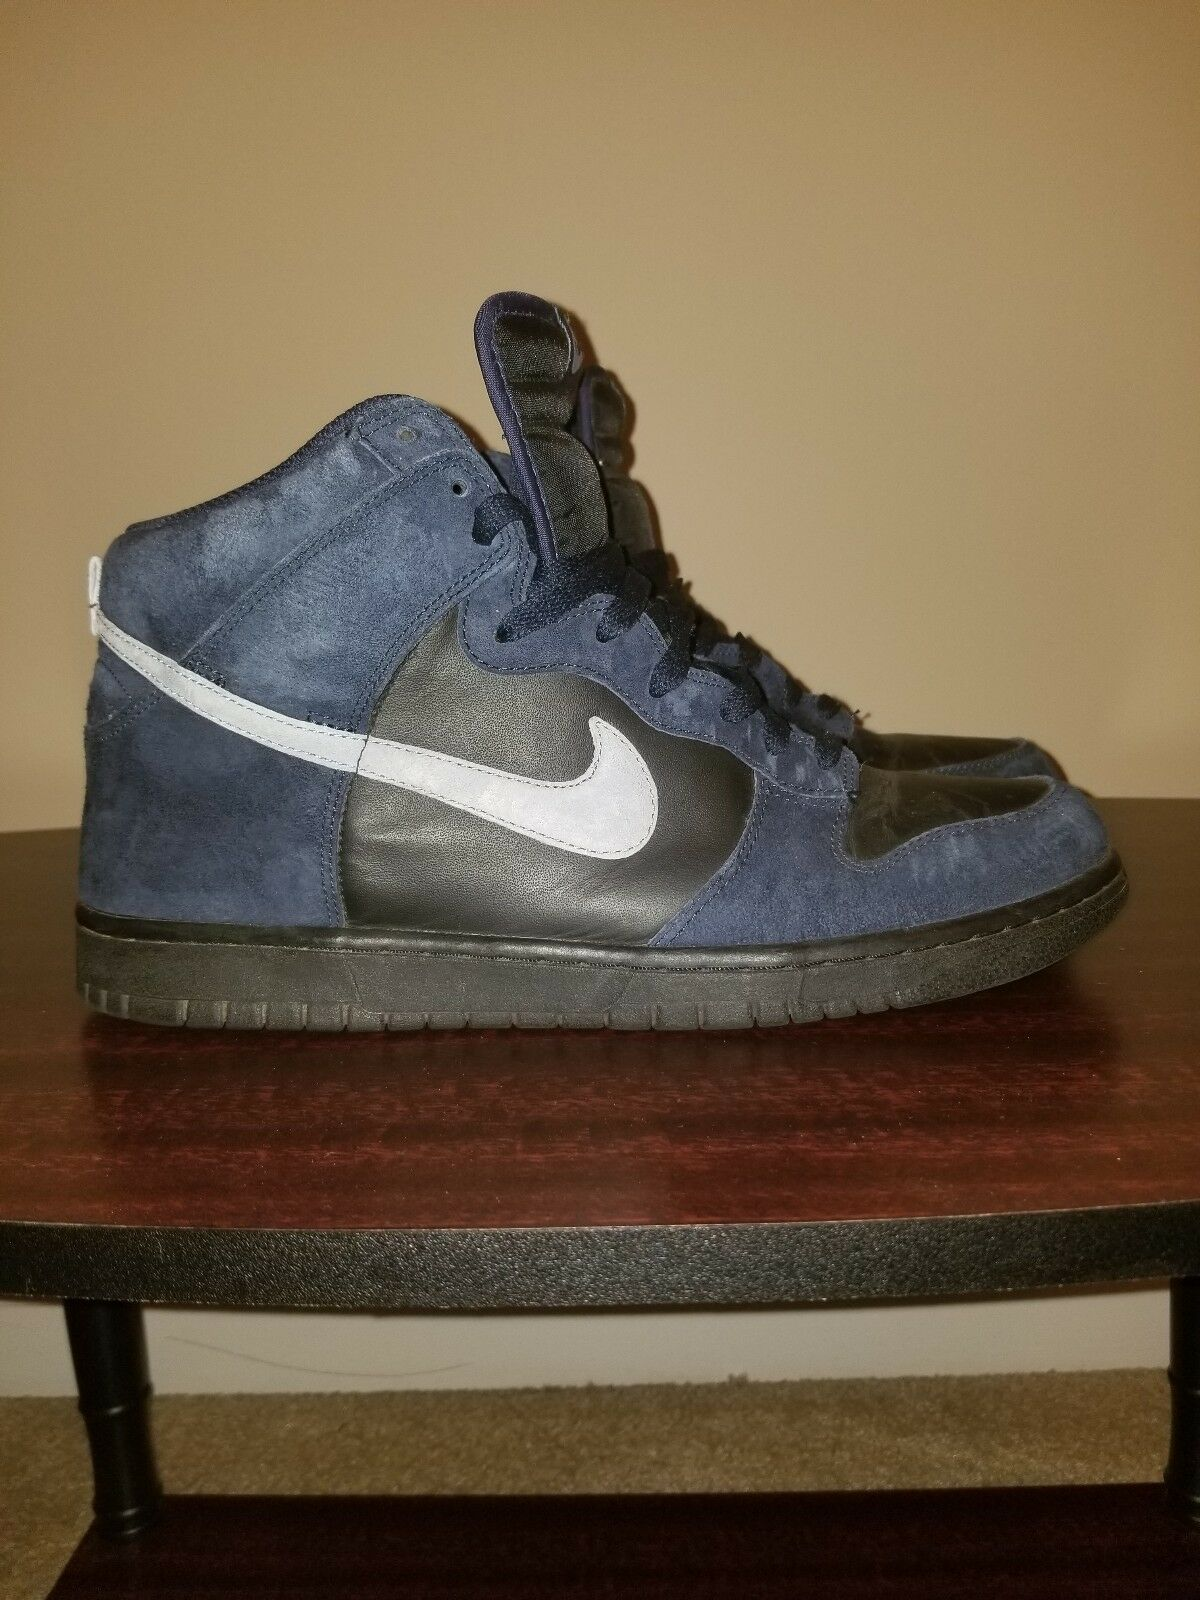 Nike Dunk Size 11.5 bluee and Black Great Condition